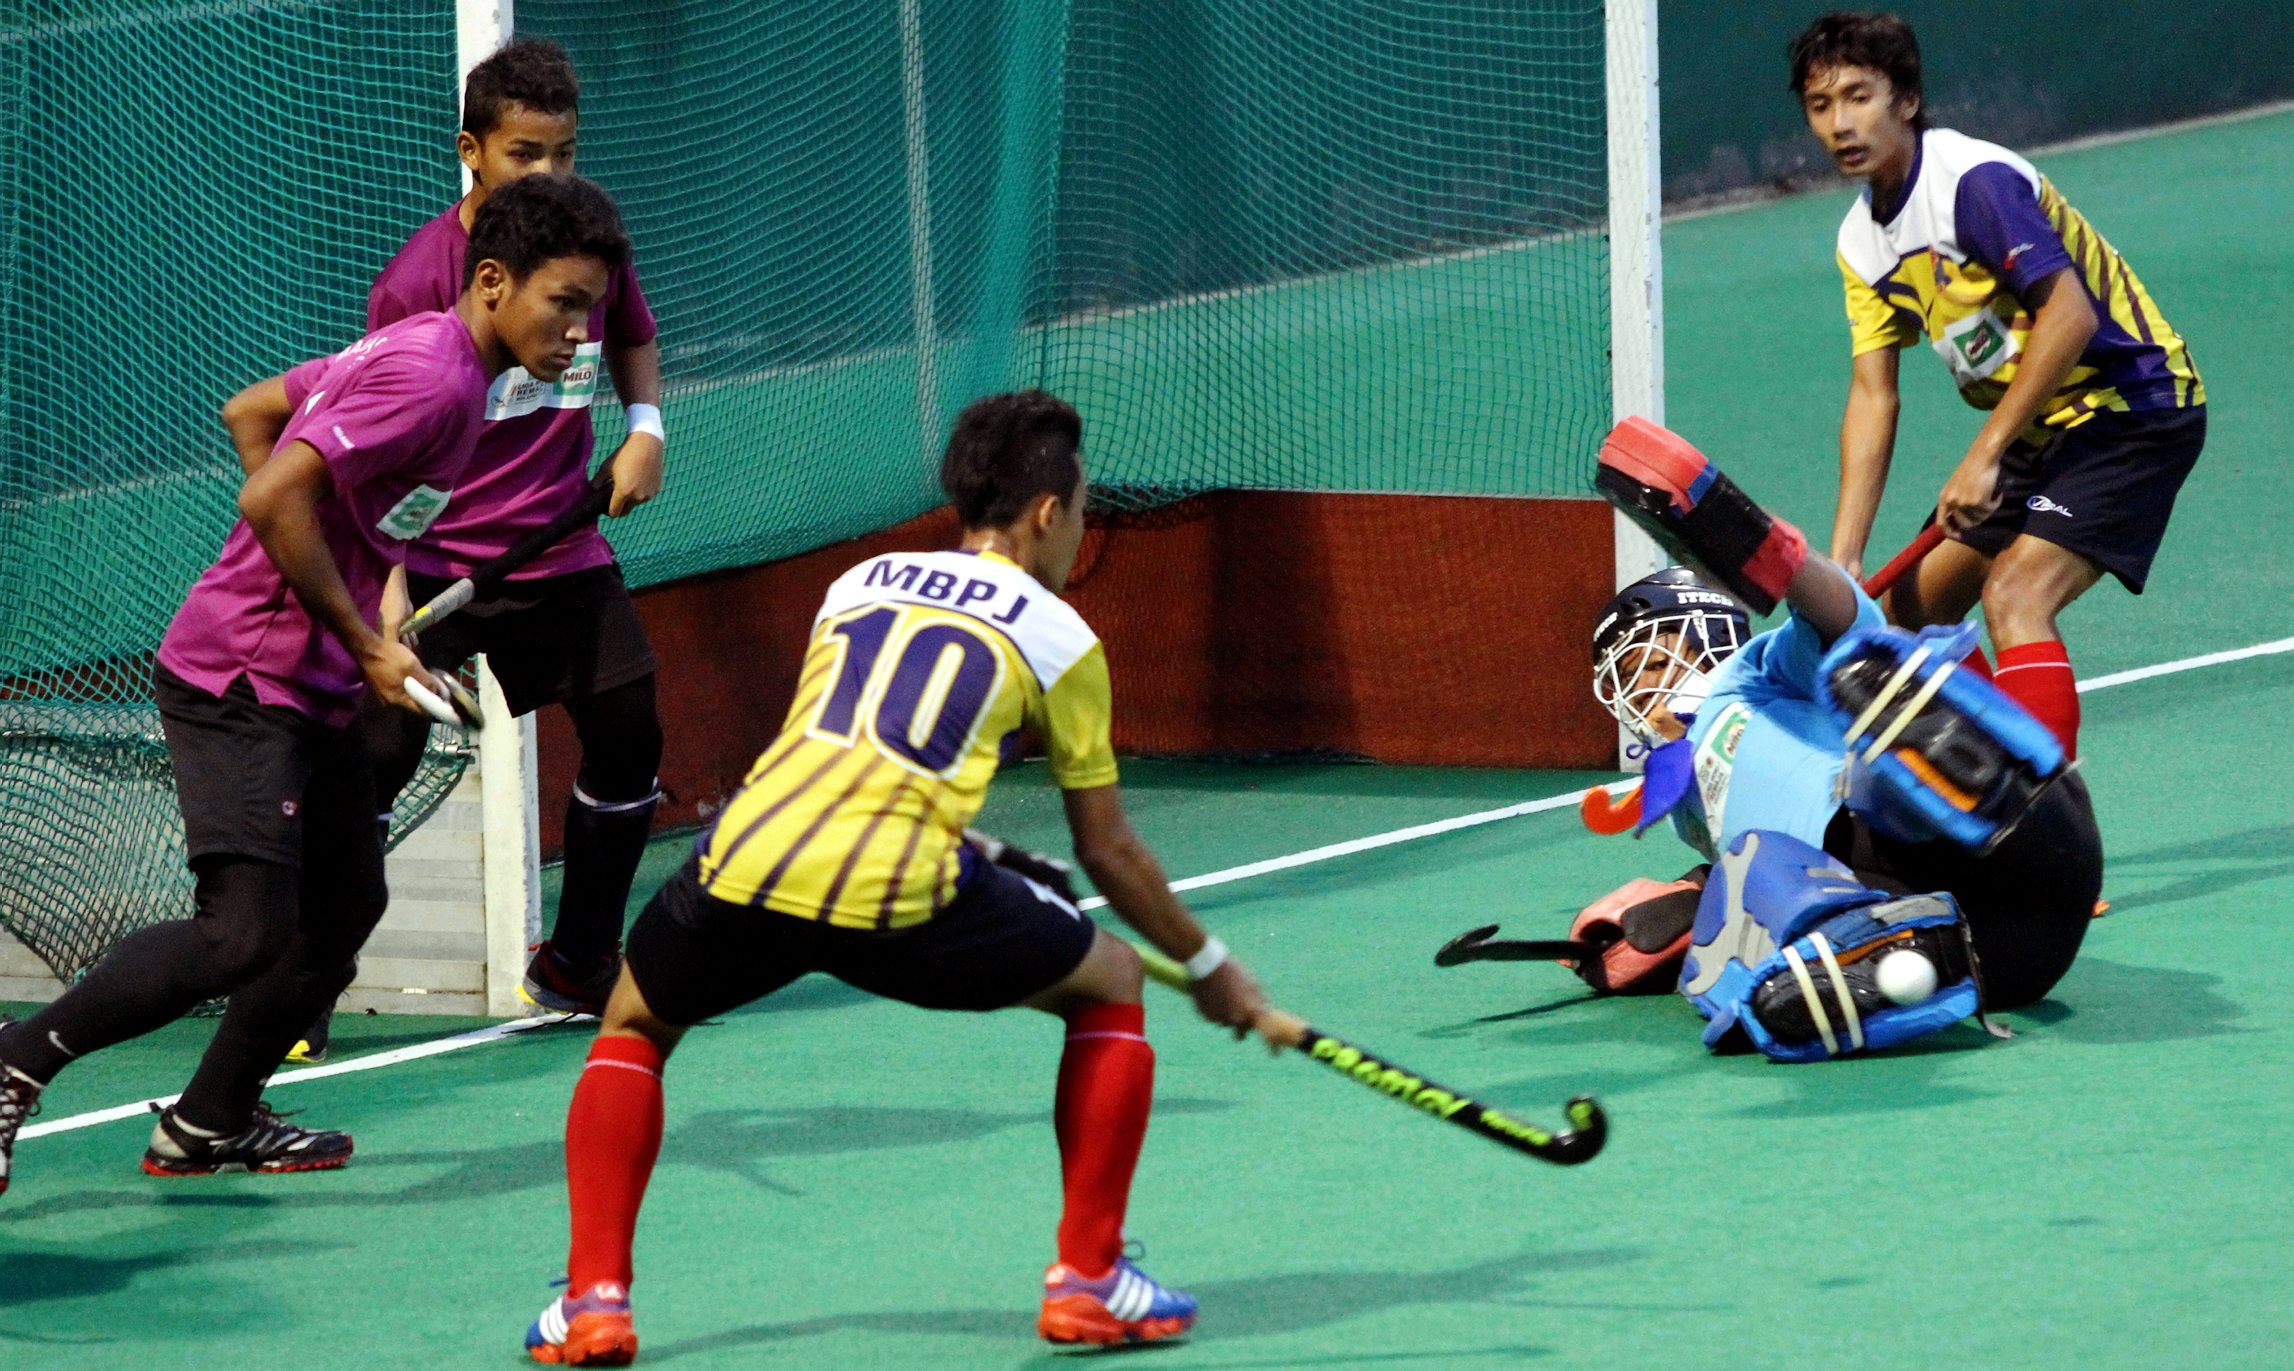 An MBPJ player (in yellow) attempting a field goal against Malacca High School in their Malaysian Junior Hockey League Div 1 match in Kuala Lumpur on Sunday. - SHAARI CHEMAT/The Star